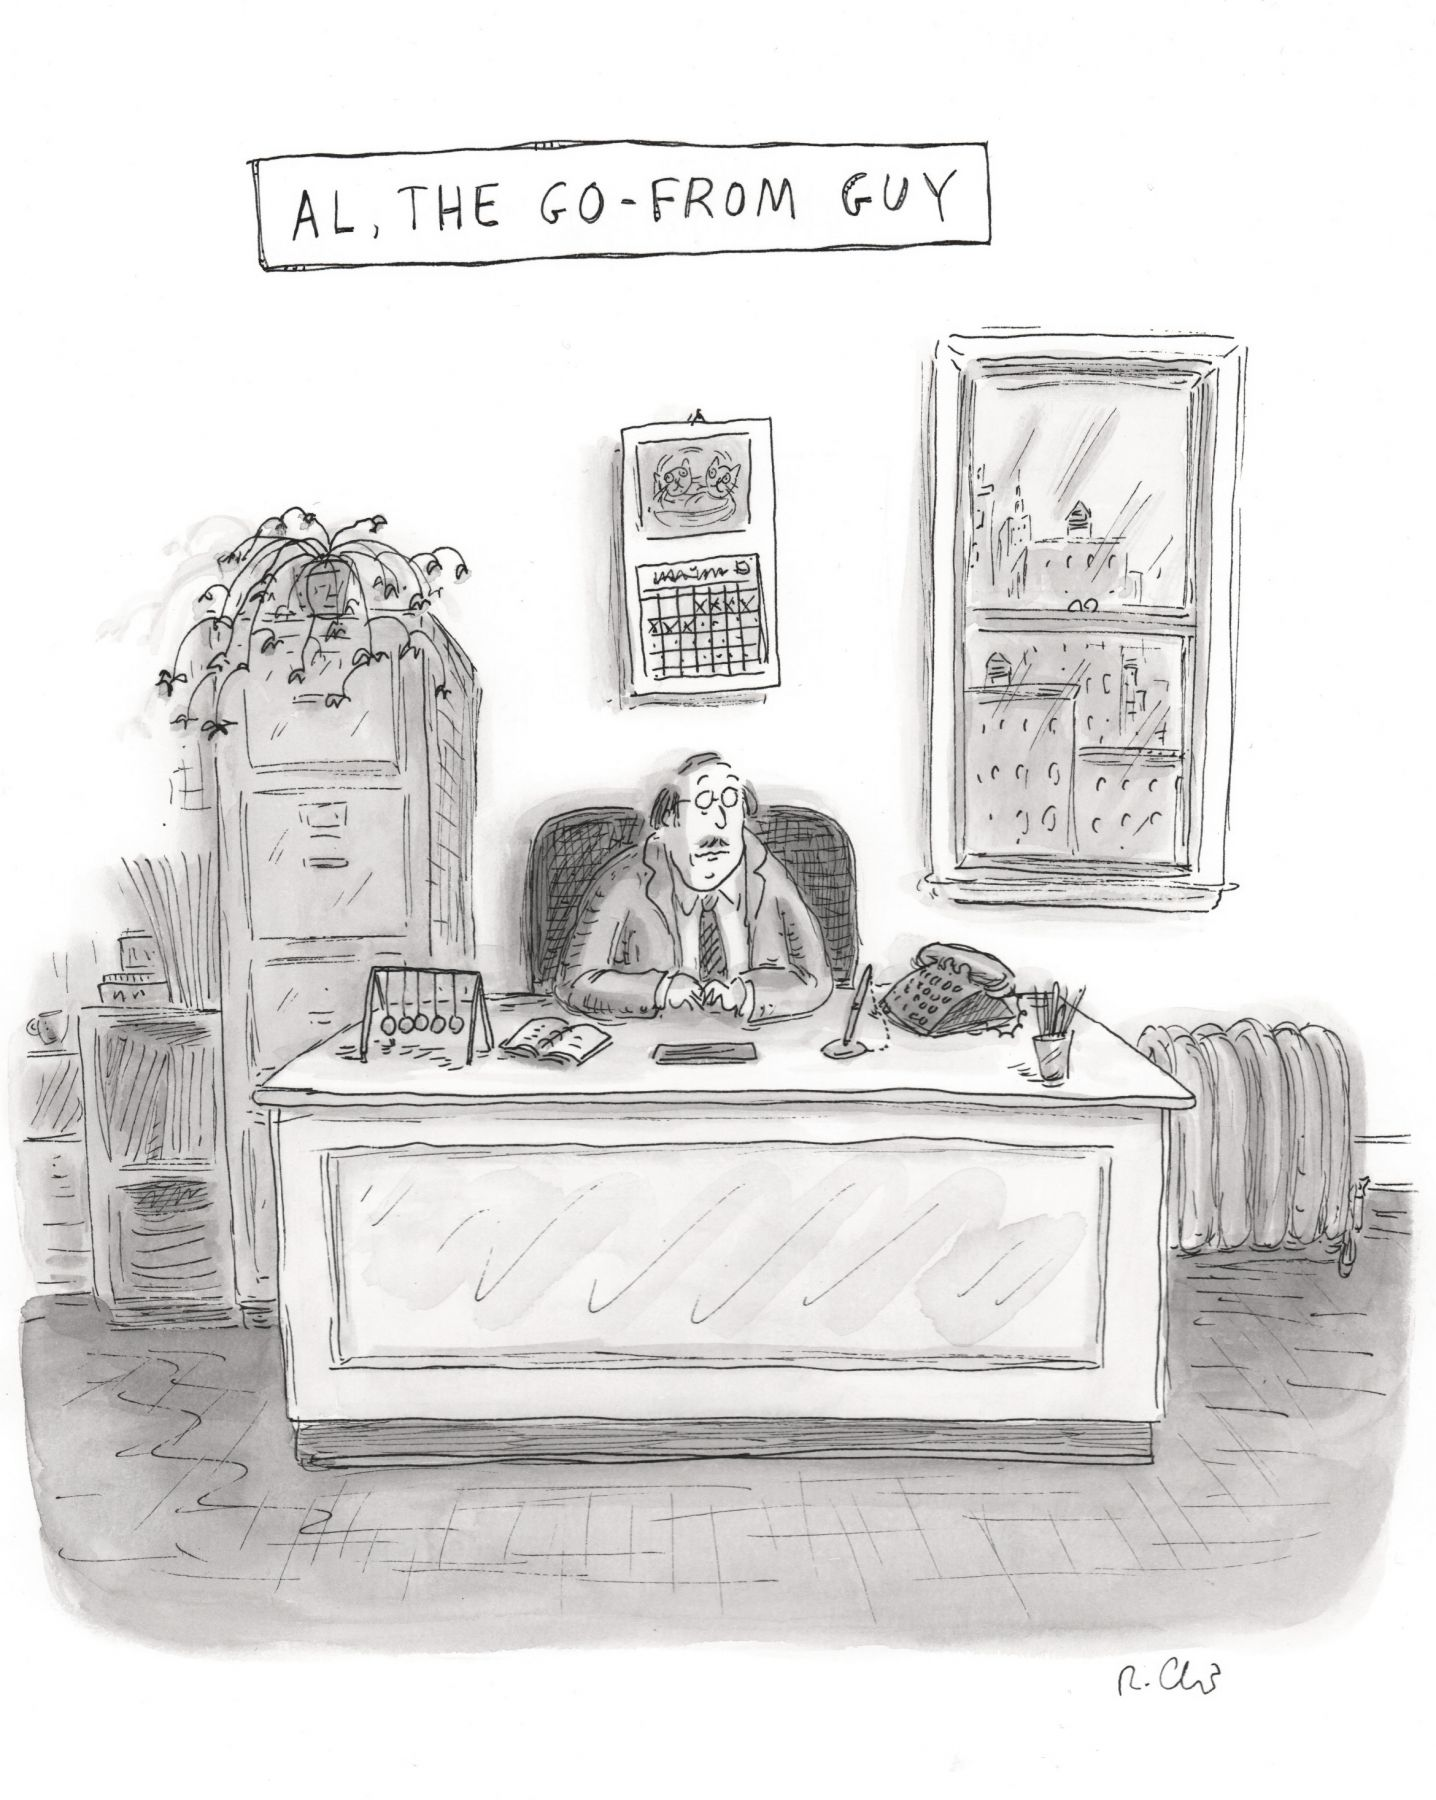 Roz Chast, Al, The Go-From Guy,